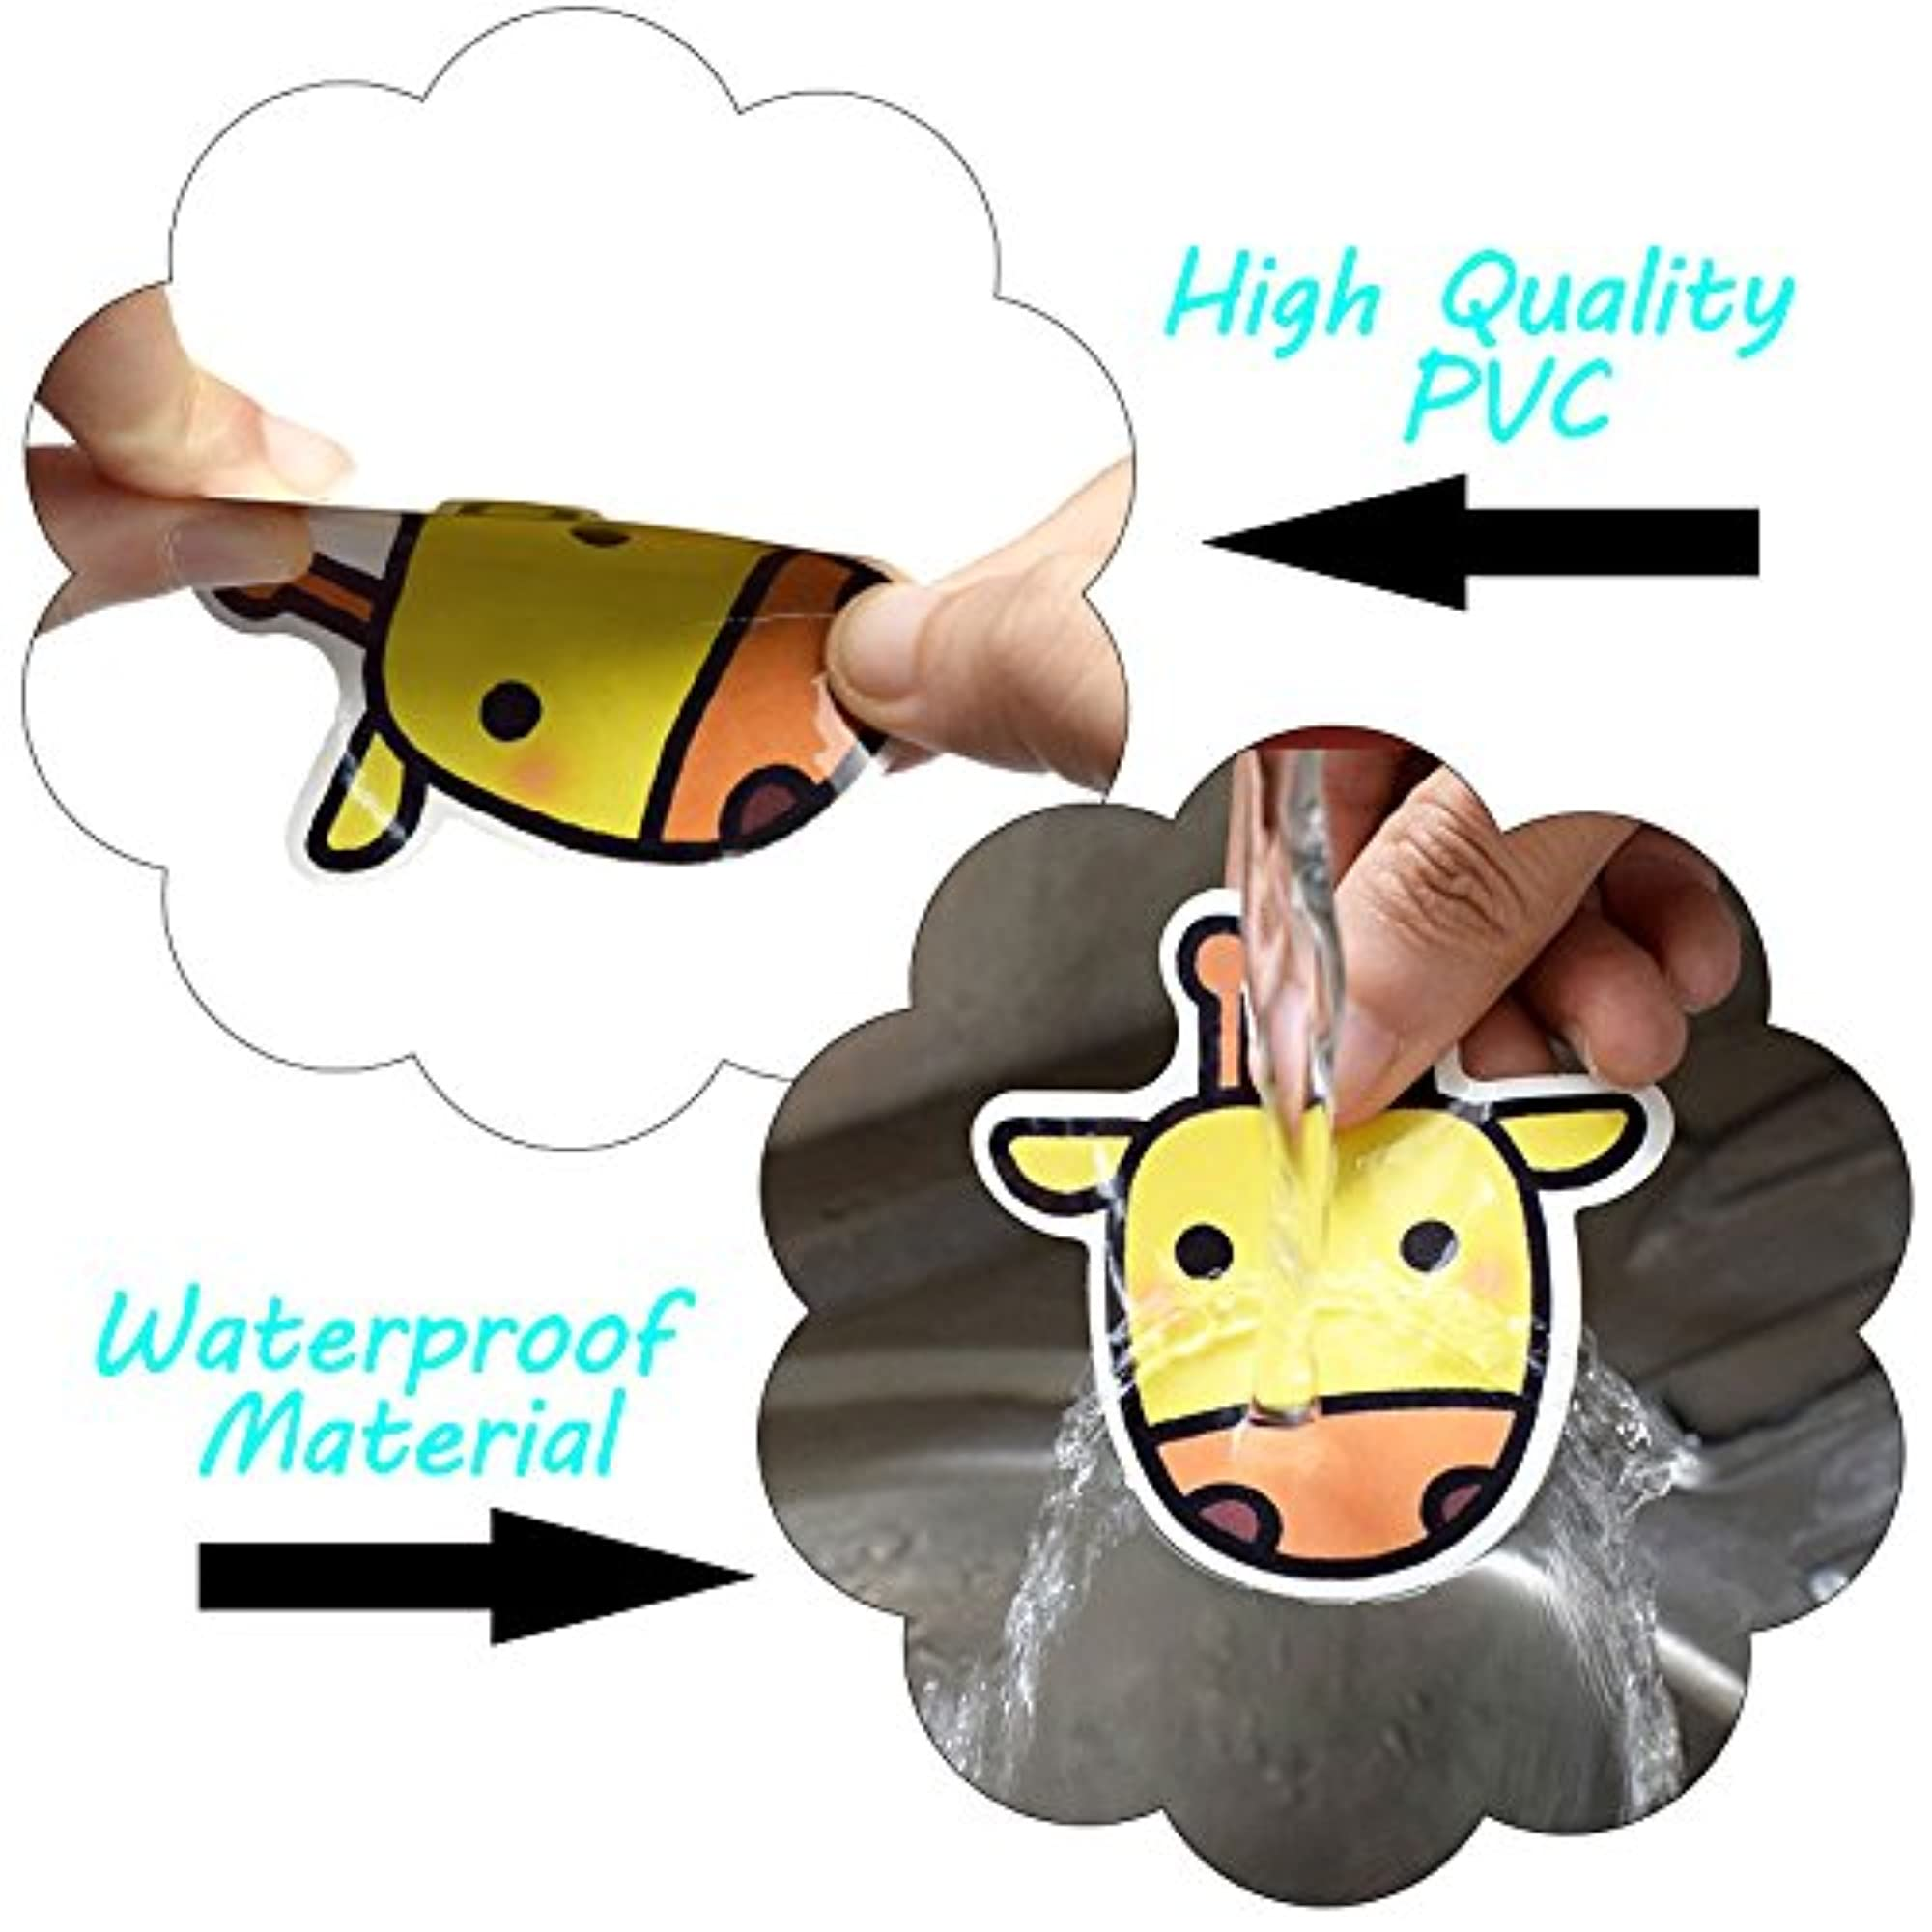 Waterproof, Thick, And Durable Vinyl Stickers.